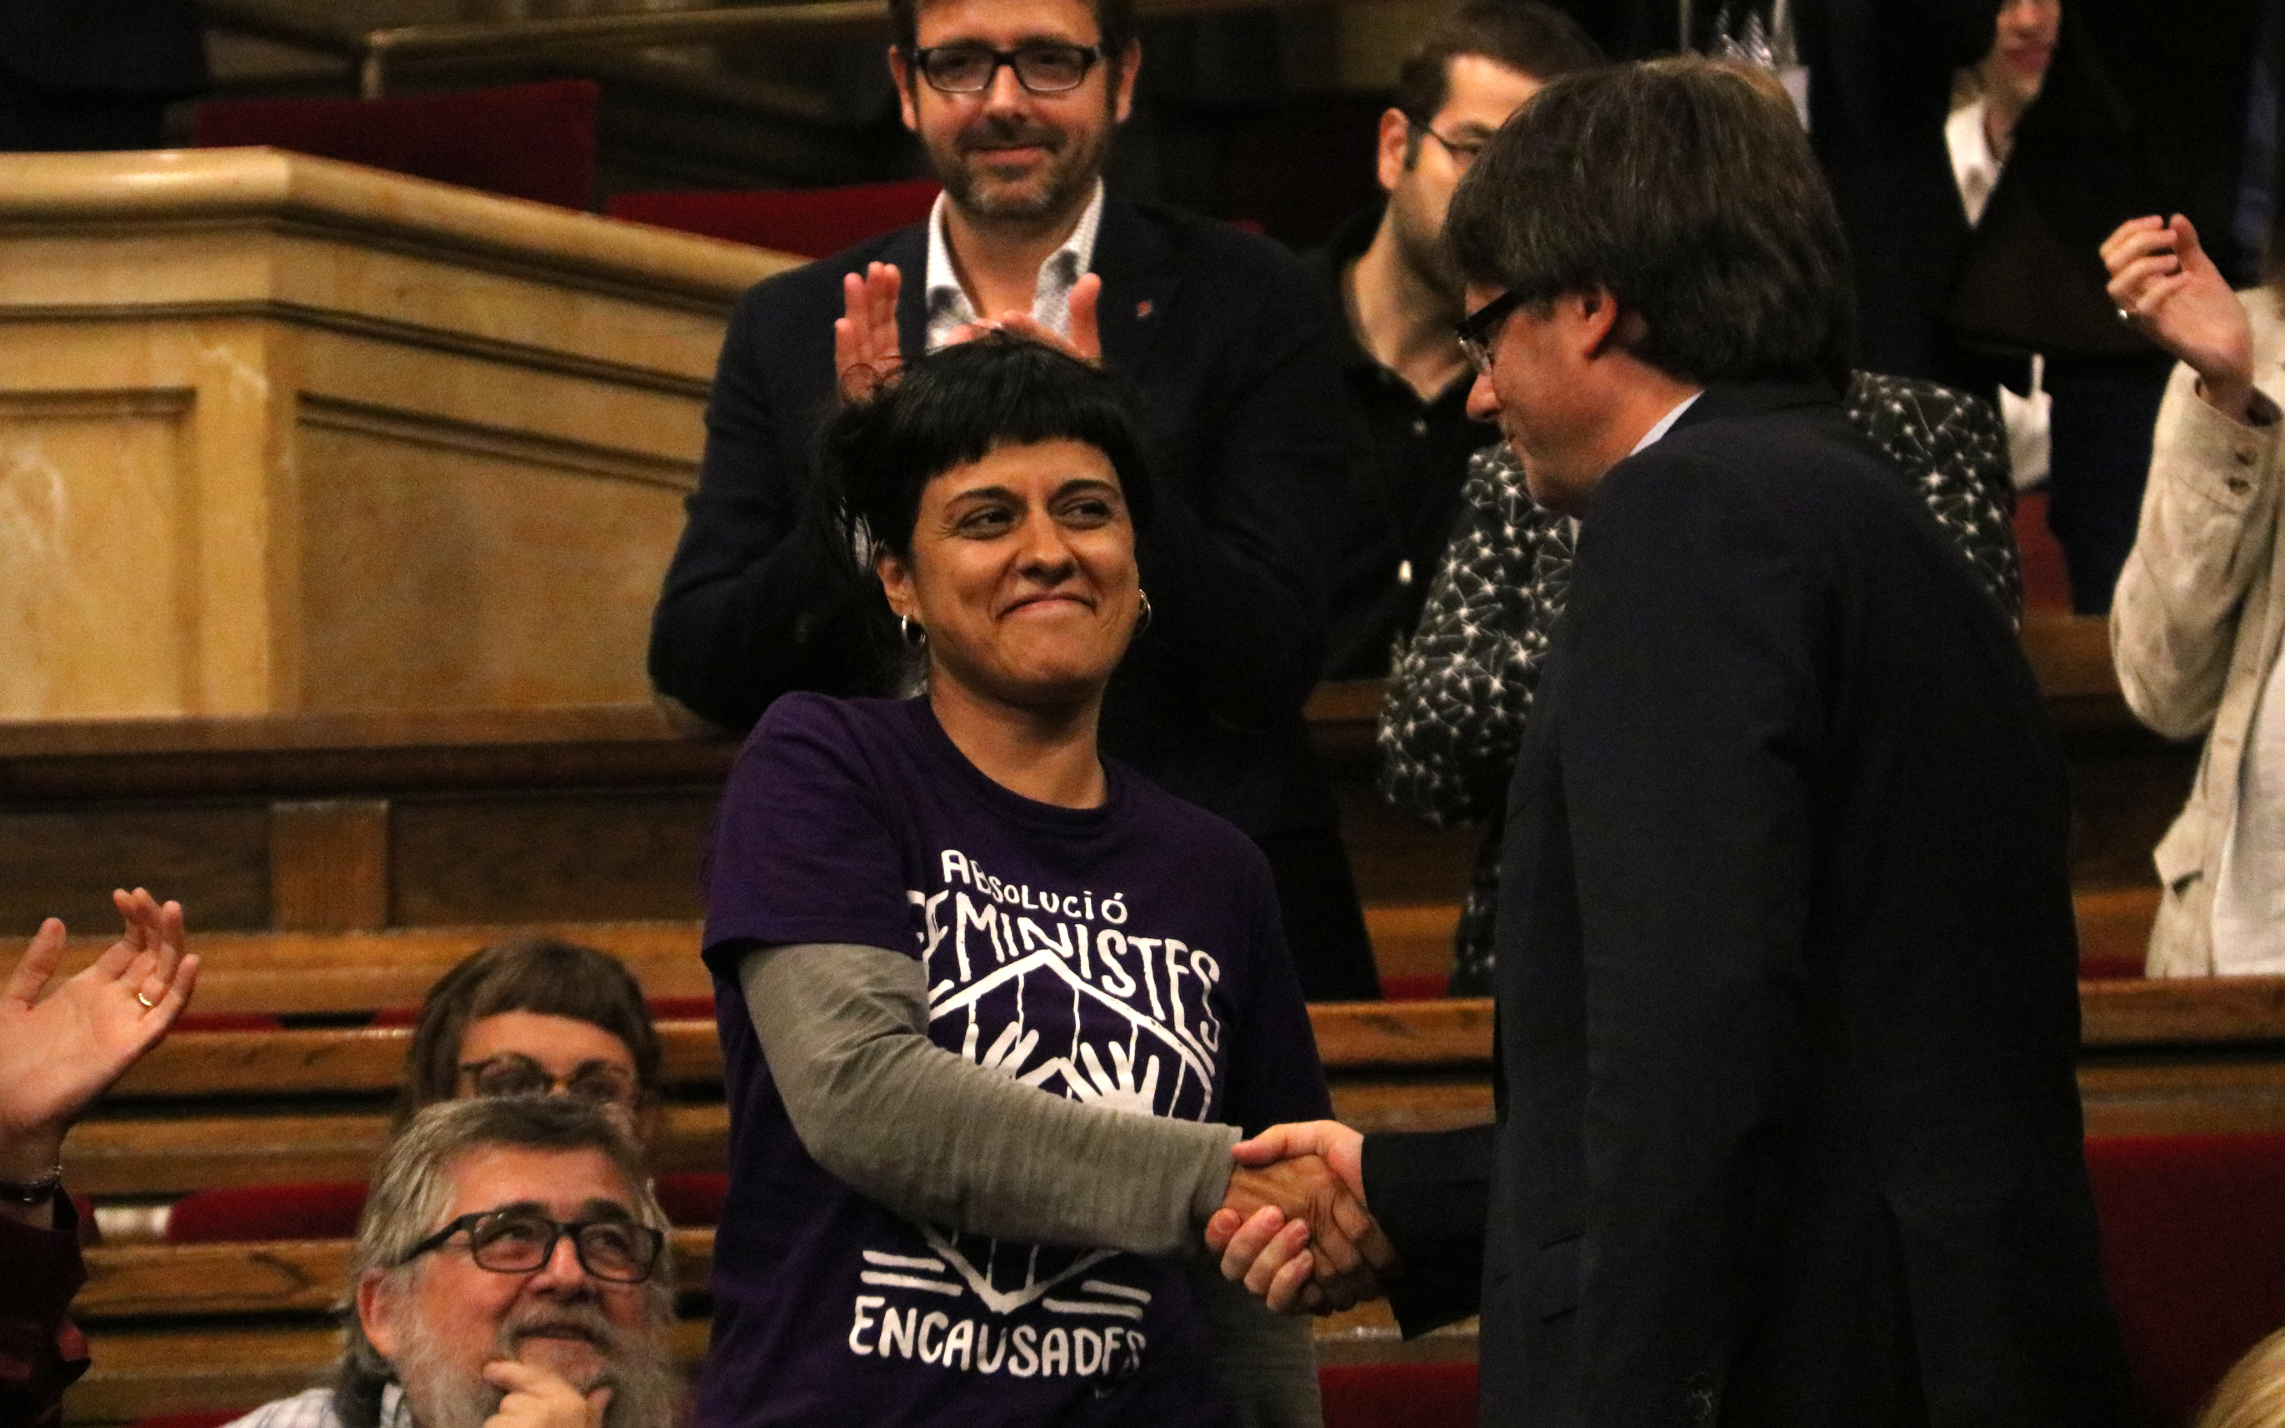 Anna Gabriel and Carles Puigdemont shaking hands at the Catalan Parliament (by Júlia N.)